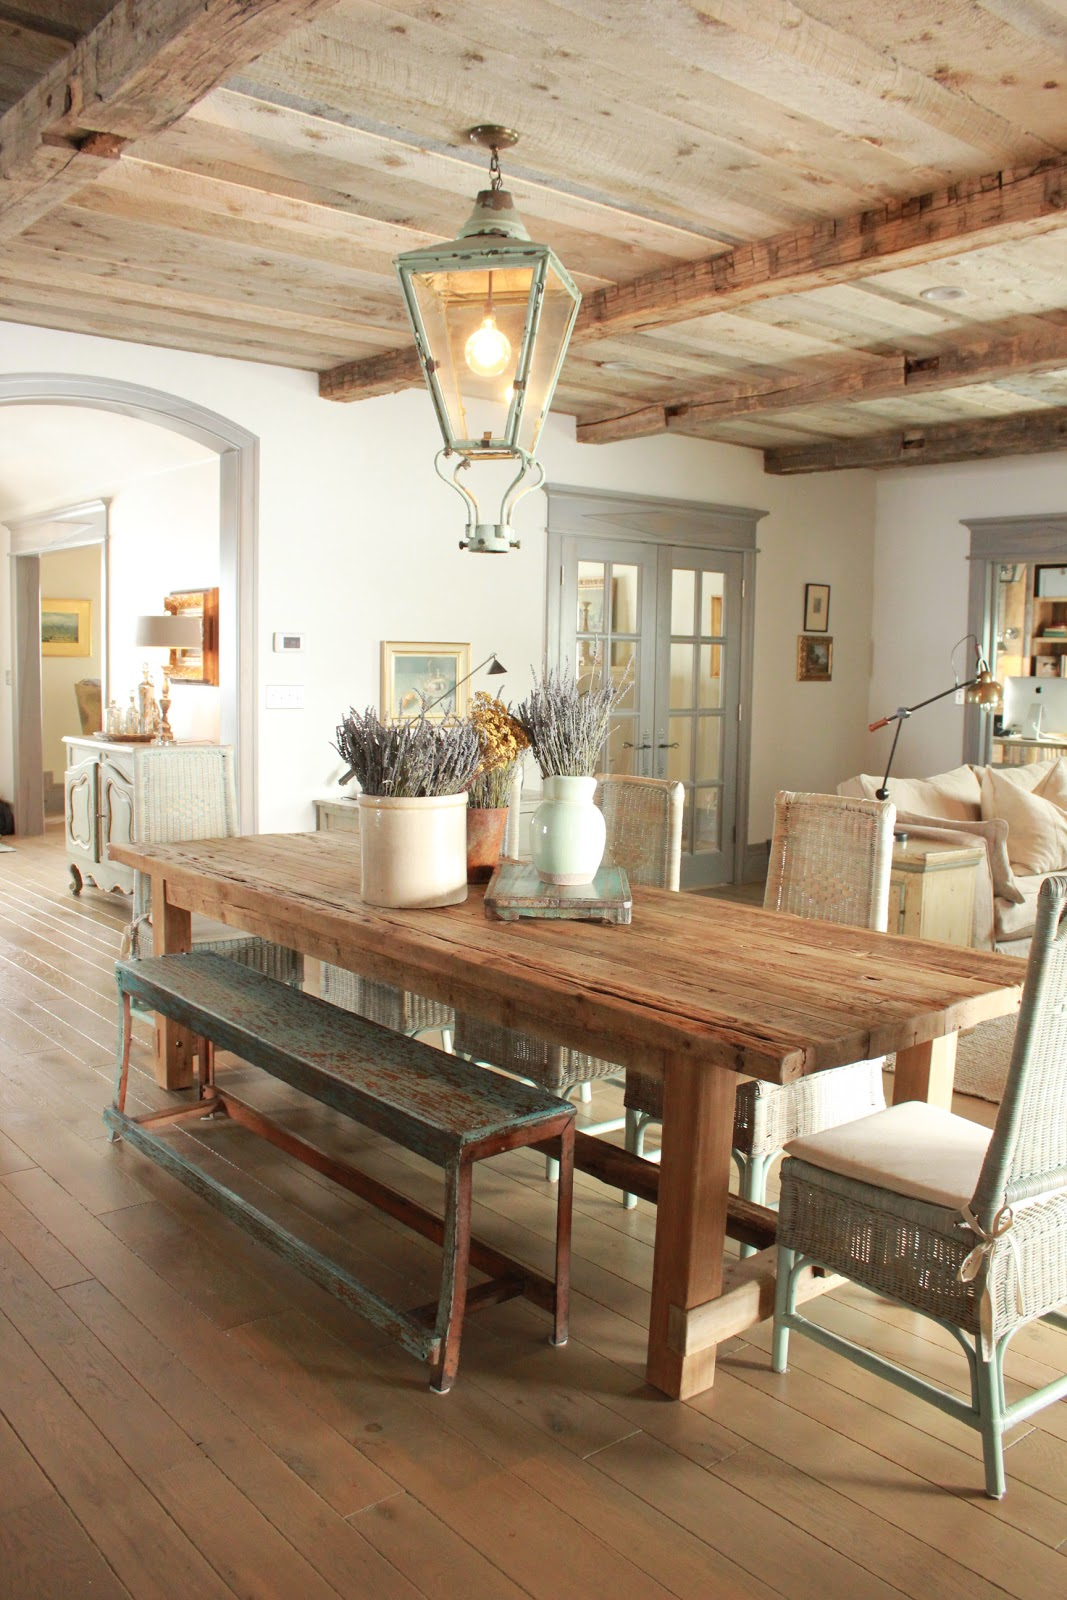 Magnificent Gustavian French dining room in stone cottage with rustic interiors, reclaimed wood ceilings, blue-grey, green, and collected European antiques. Designed by Desiree Ashworth. Find ideas for grey, blue, and green paint colors.